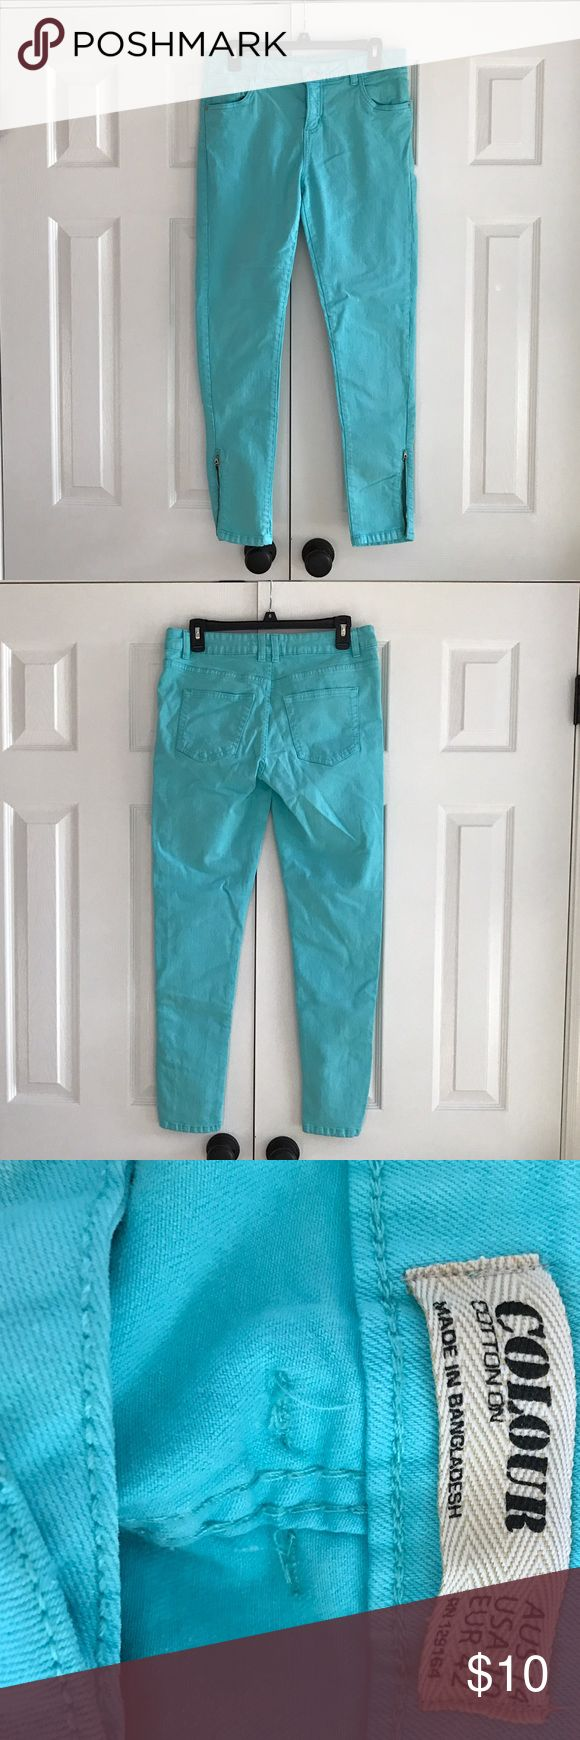 "Cotton On Colour jeans 90% cotton 2% elastane  Machine wash cold.  Color is a lighter turquoise. Jeans are skinny leg with the zippers.  Photo 4. Front rises 9 1/2"" and back rises 14"". Inseam is 29"". Flat waist at waistband is 16 1/2"" across. No rips no stains and all  stitching is intact. Gently worn and cleaned. No trades and please use offer button. Cotton On Jeans Skinny"